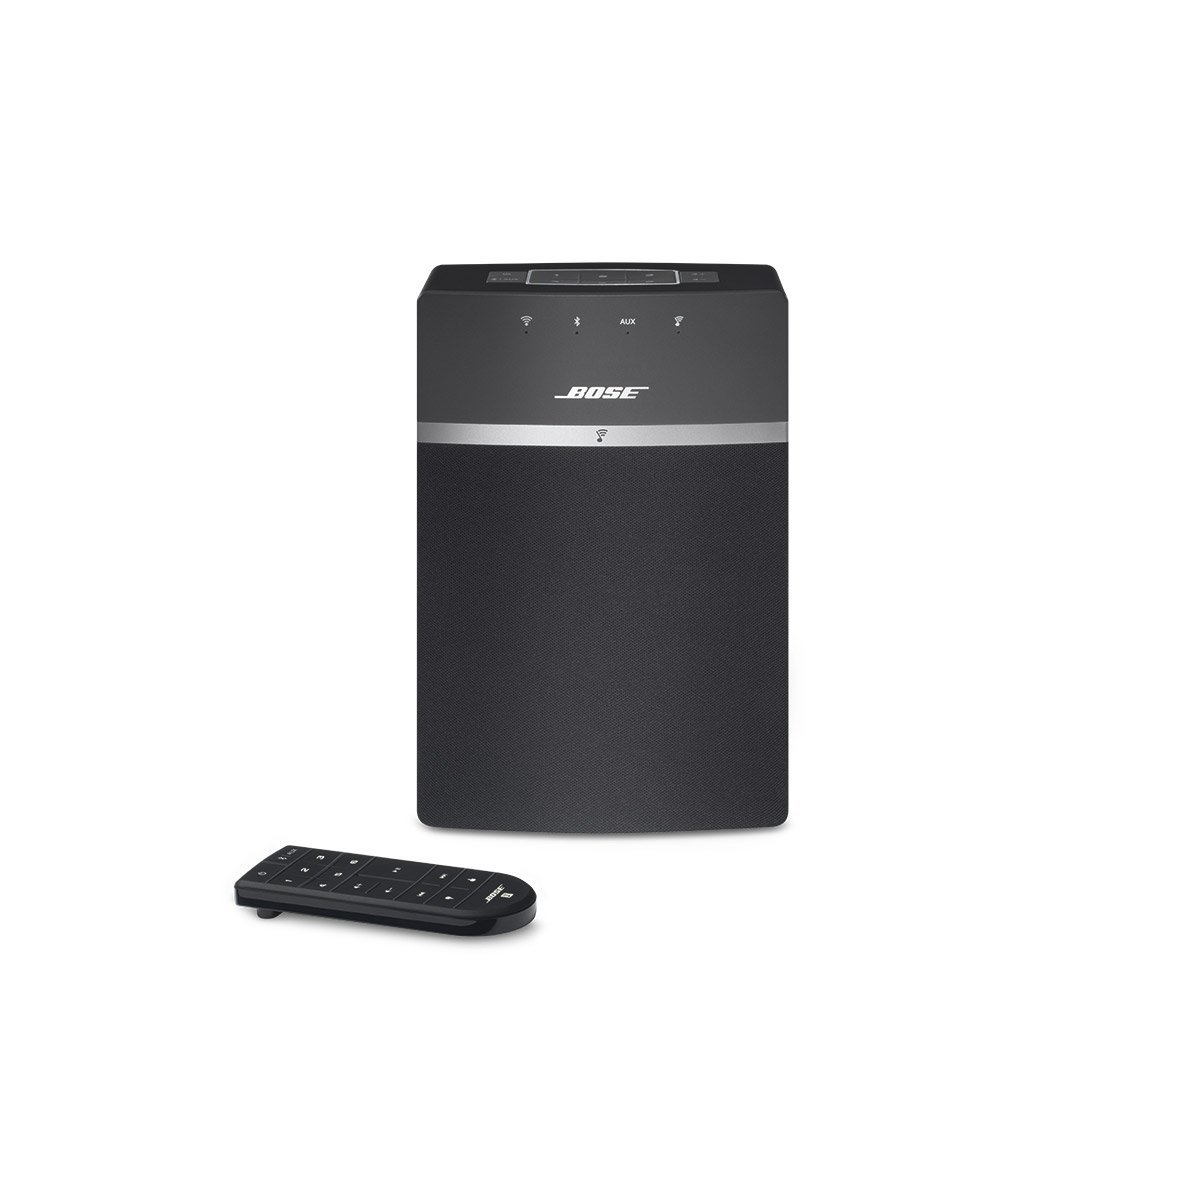 bon plan l 39 enceinte bluetooth bose soundtouch 10 est. Black Bedroom Furniture Sets. Home Design Ideas